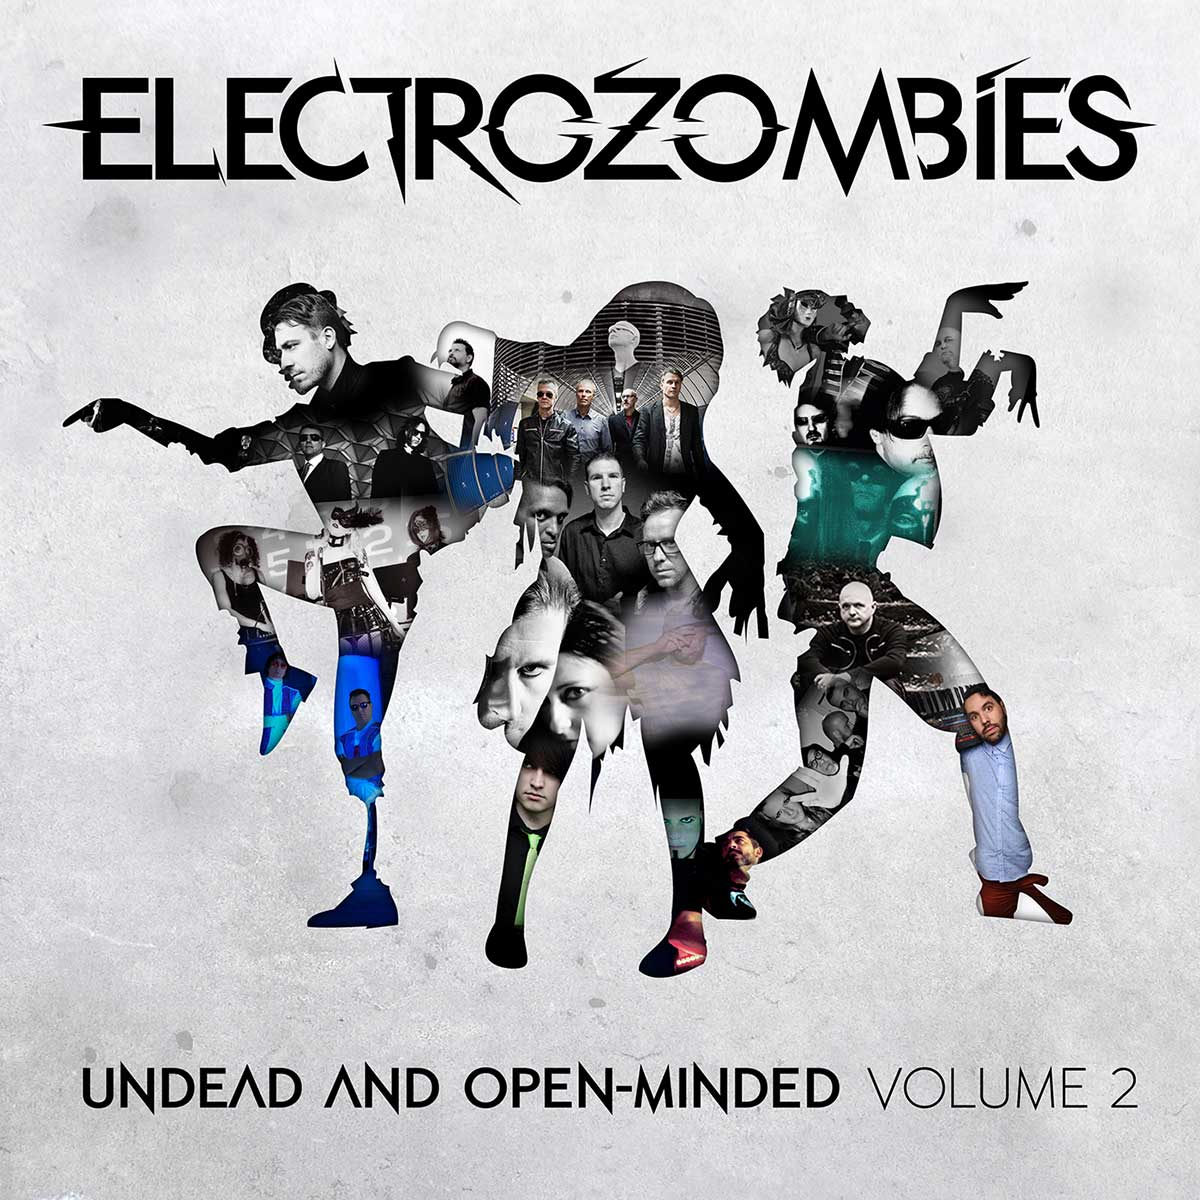 Undead And Open-Minded: Volume 2